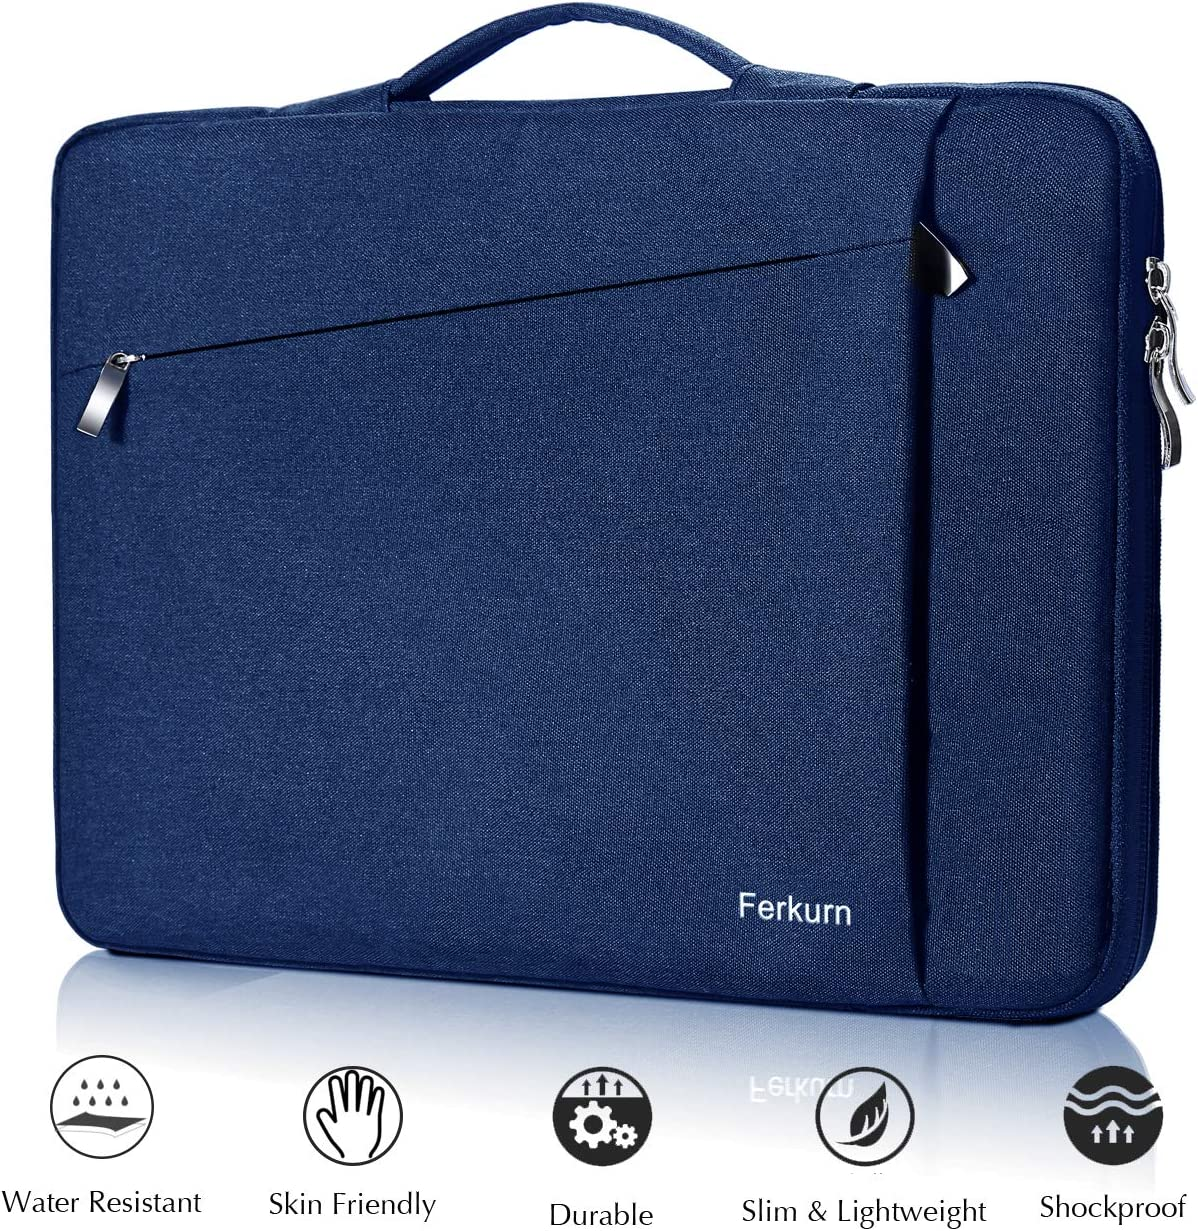 Ferkurn 11 11.6 12 inch Laptop Sleeve Case Carrying Chromebook Bag with Handle Compatible MacBook Air 11.6, Chromebook 3100, Surface Pro, Pixelbook, Acer R11, Samsung / 13 inch New MacBook/XPS 13 Blue